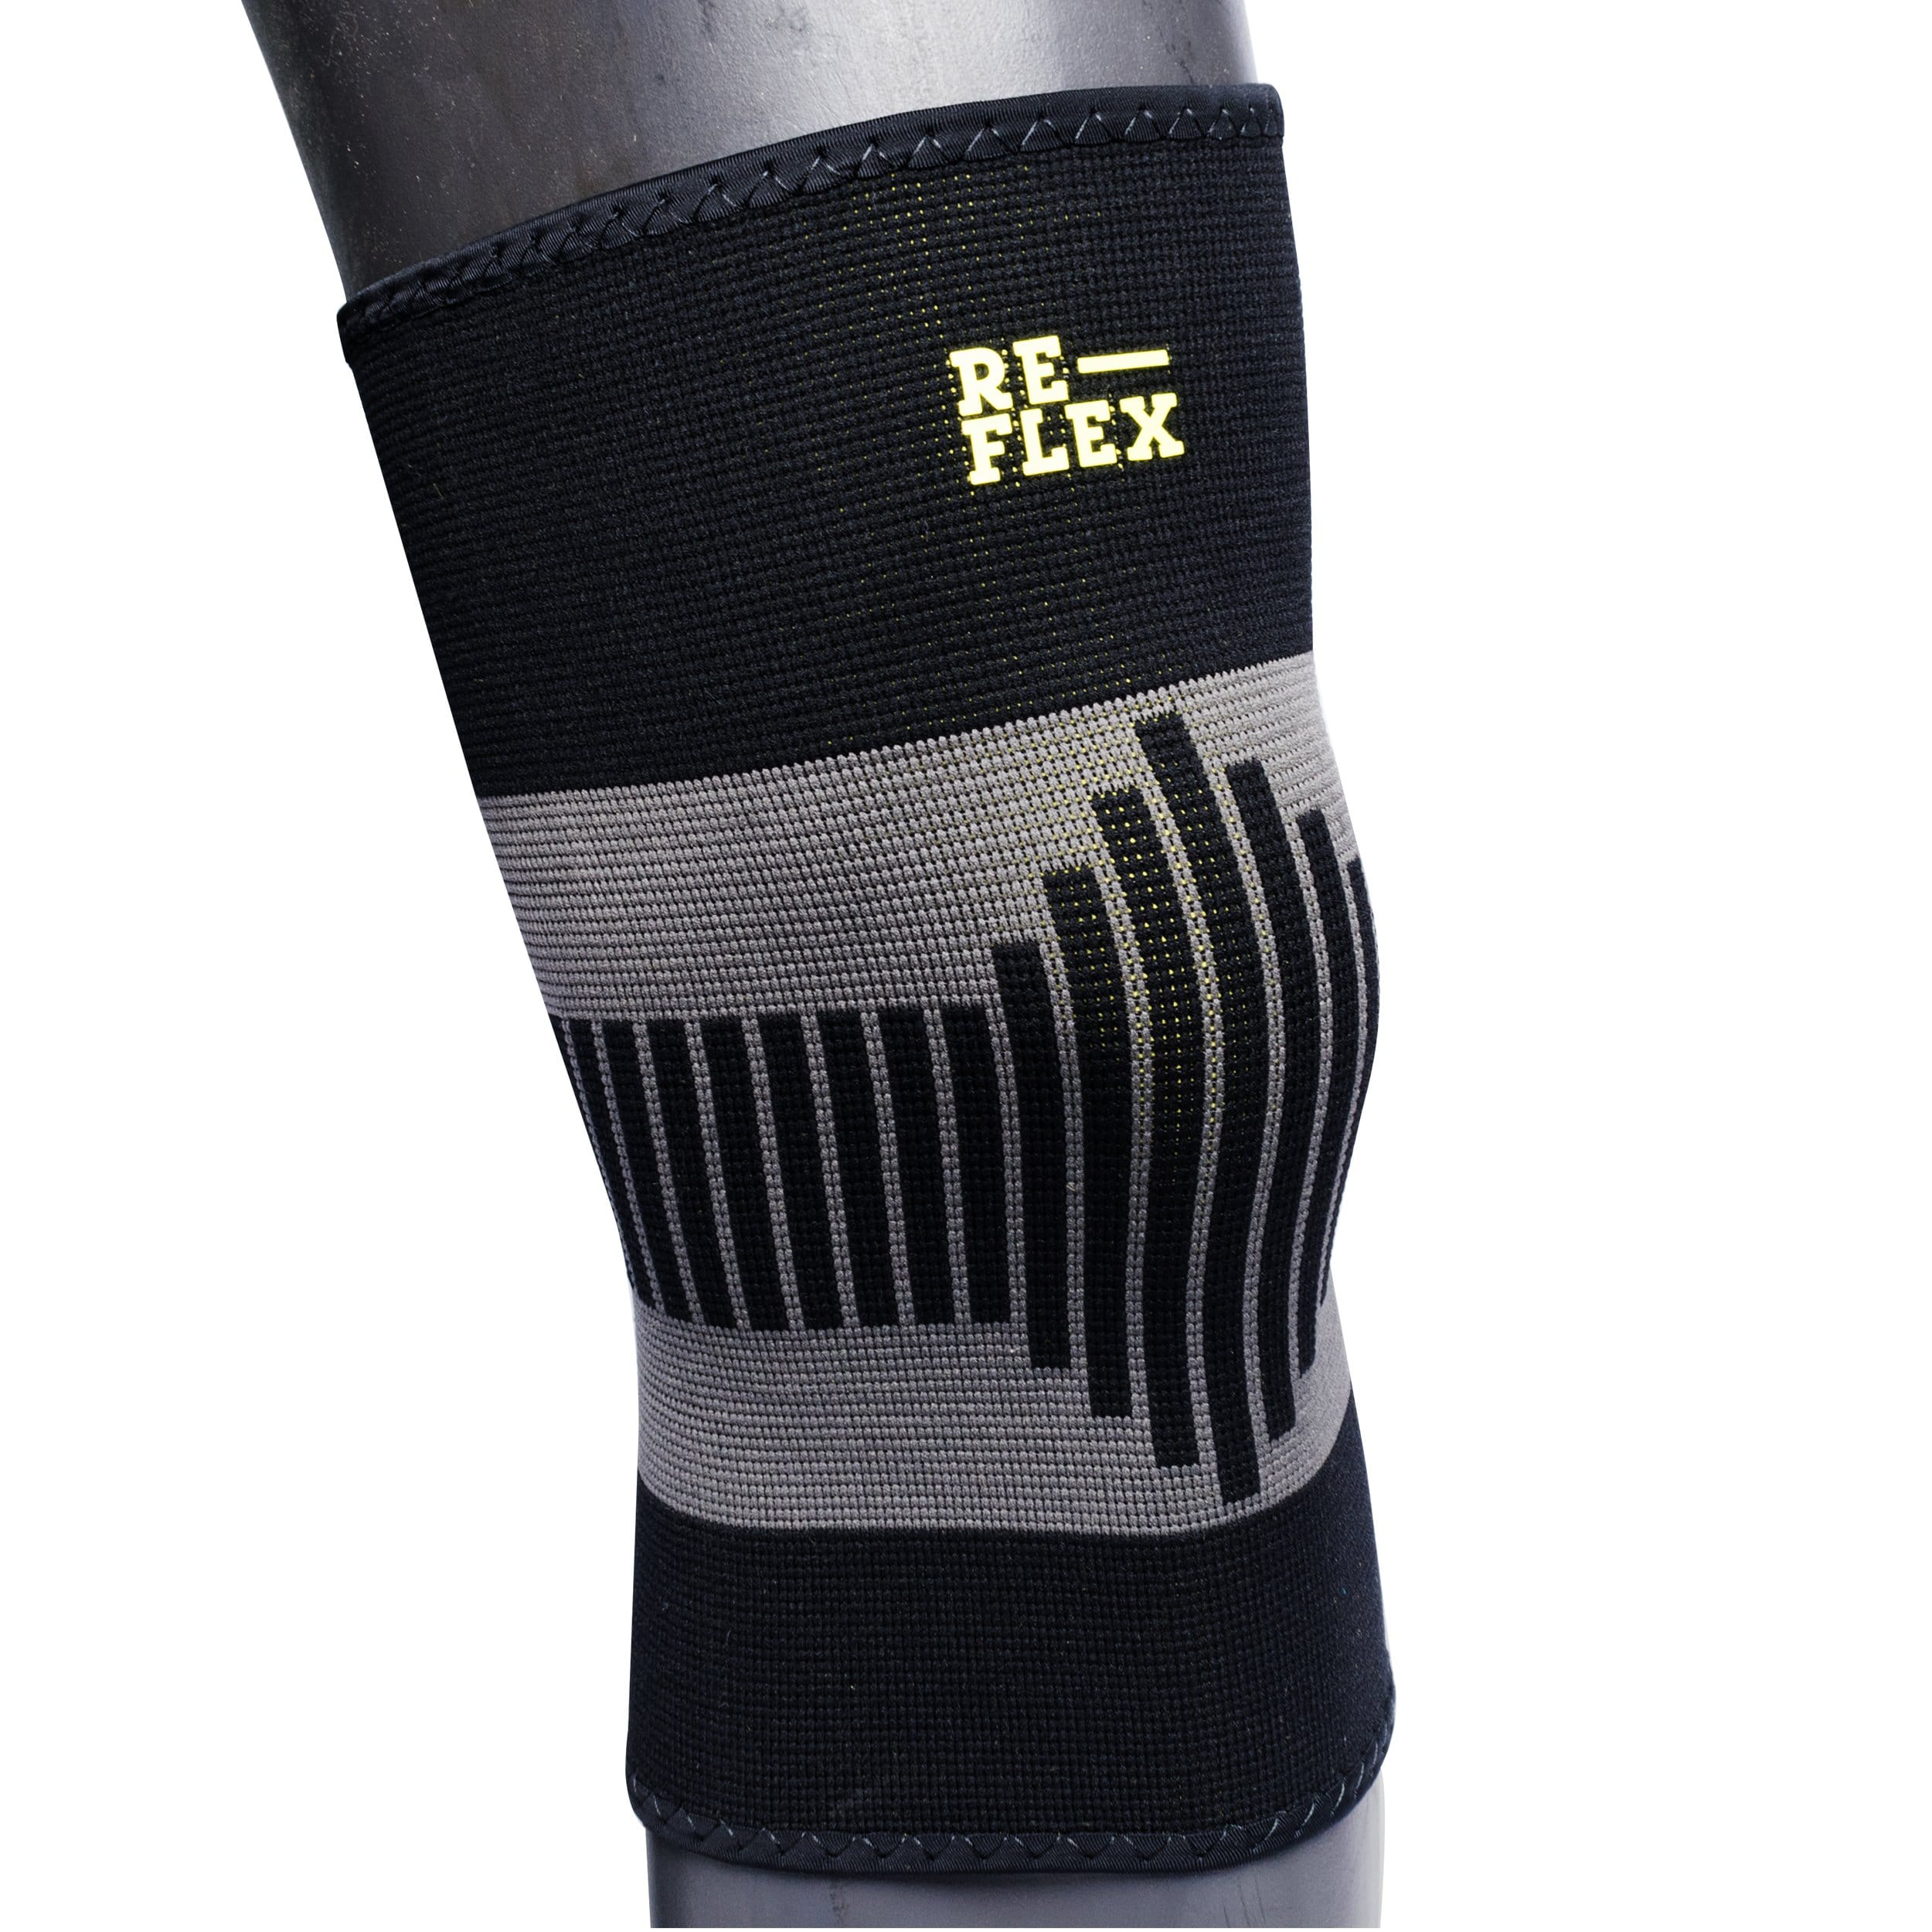 Re-flex Prime 2.0 Knee Support